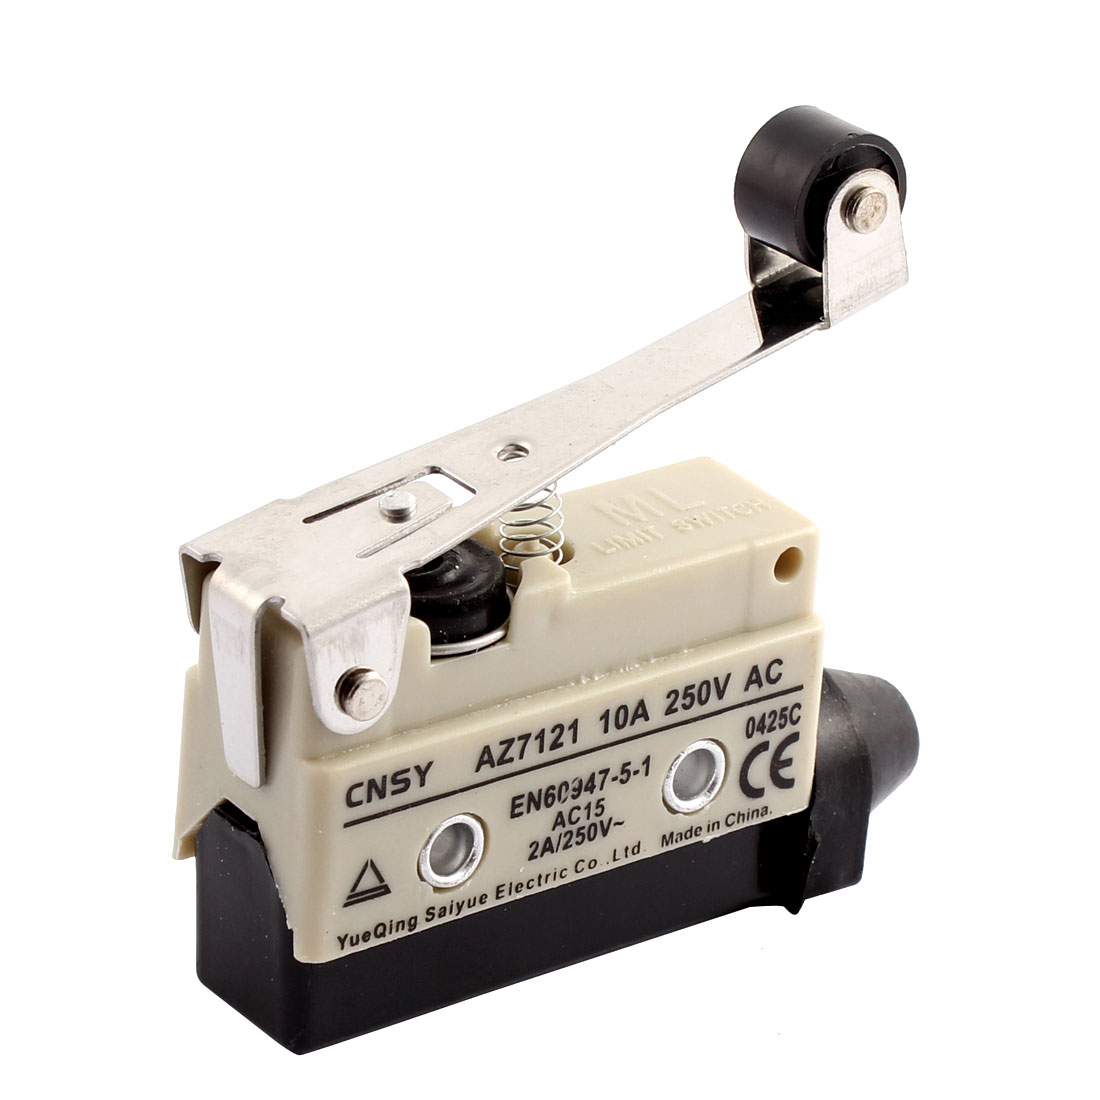 AZ7121 Long Roller Lever Arm Momentary Micro Limit Switch AC 250V 10A